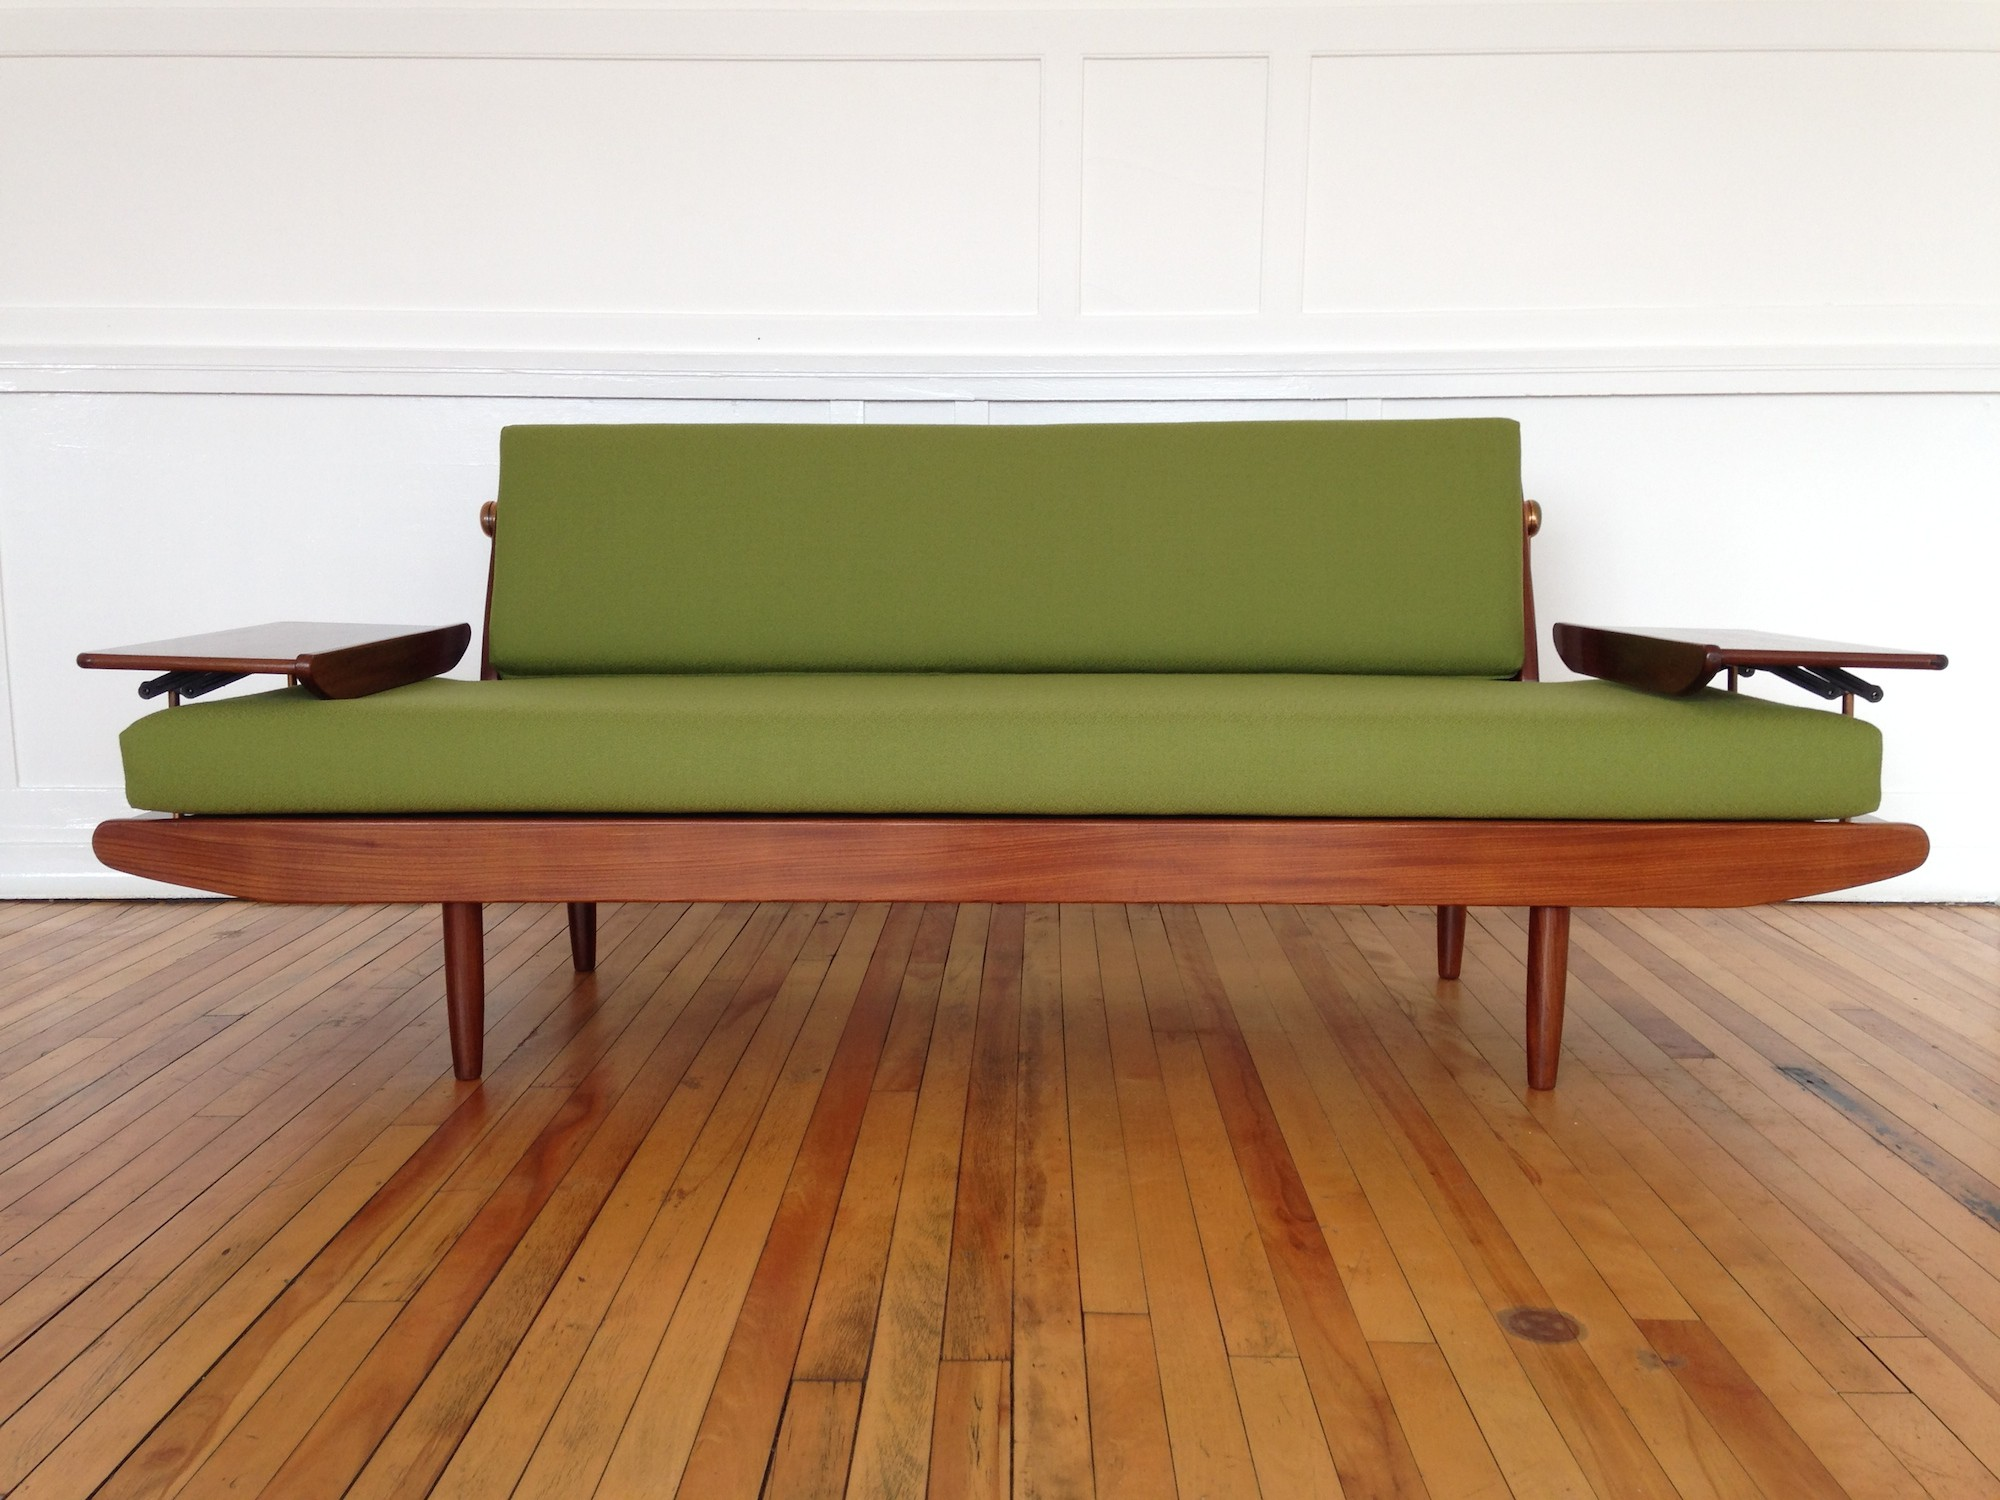 Vintage Toothill sofa bed in teak and green wool 1960s Design